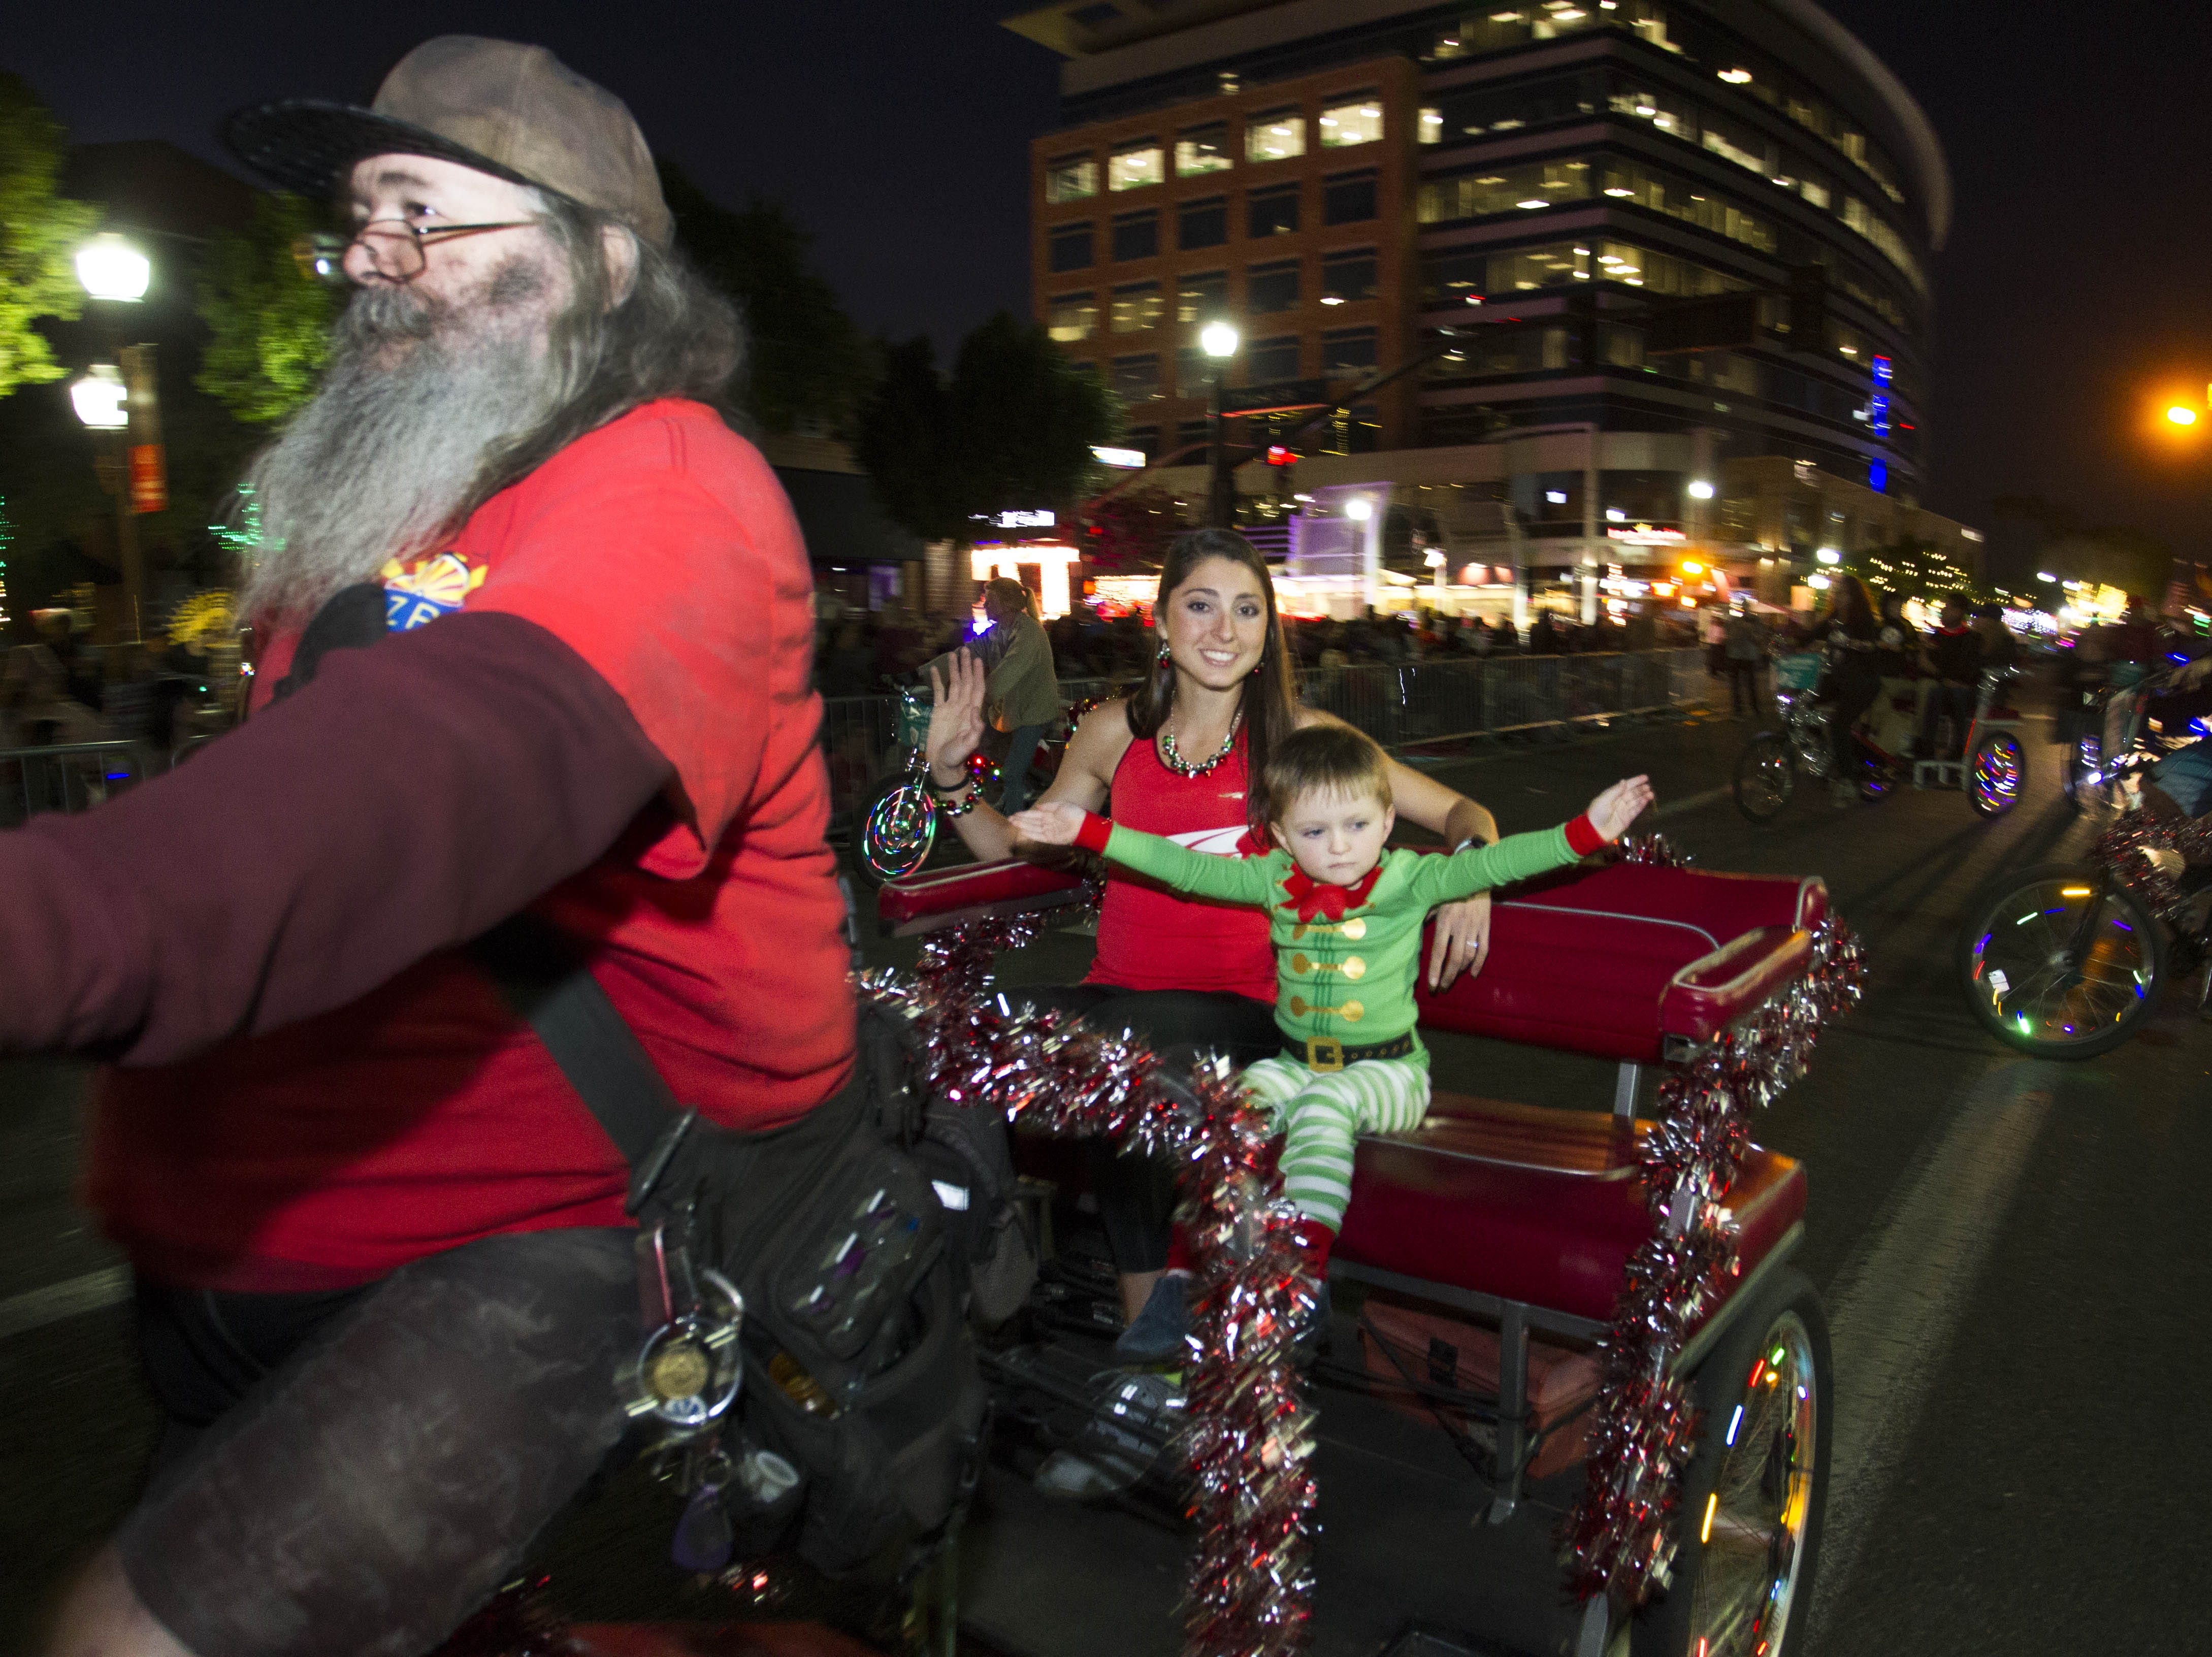 Grand Marshall Sarah Sellers and her nephew Dallin Callister 4, start off the 2018 Fantasy of Lights parade on Mill Ave. in downtown Tempe Friday, Nov. 23, 2018.